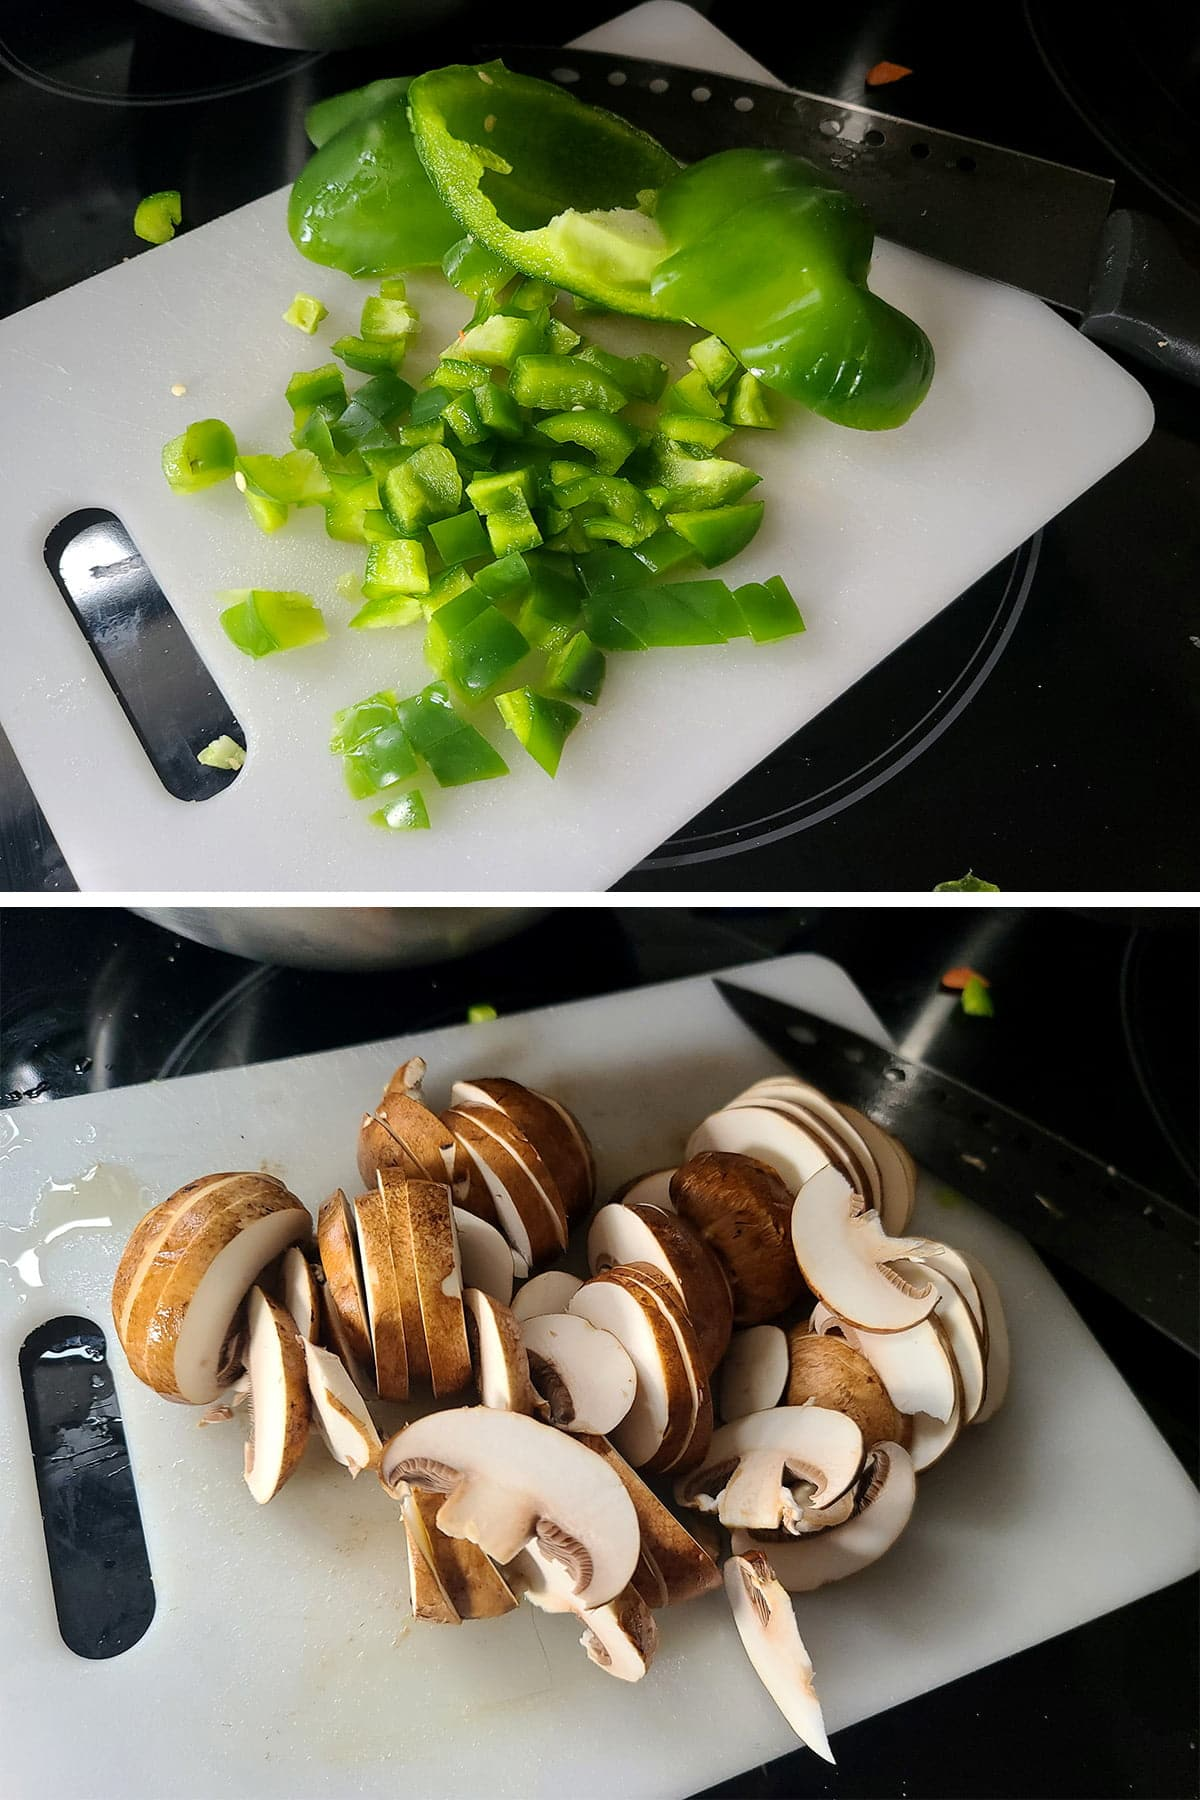 A two part compilation image showing green pepper being chopped on a cutting board, then mushrooms being thinly sliced on the same cutting board.